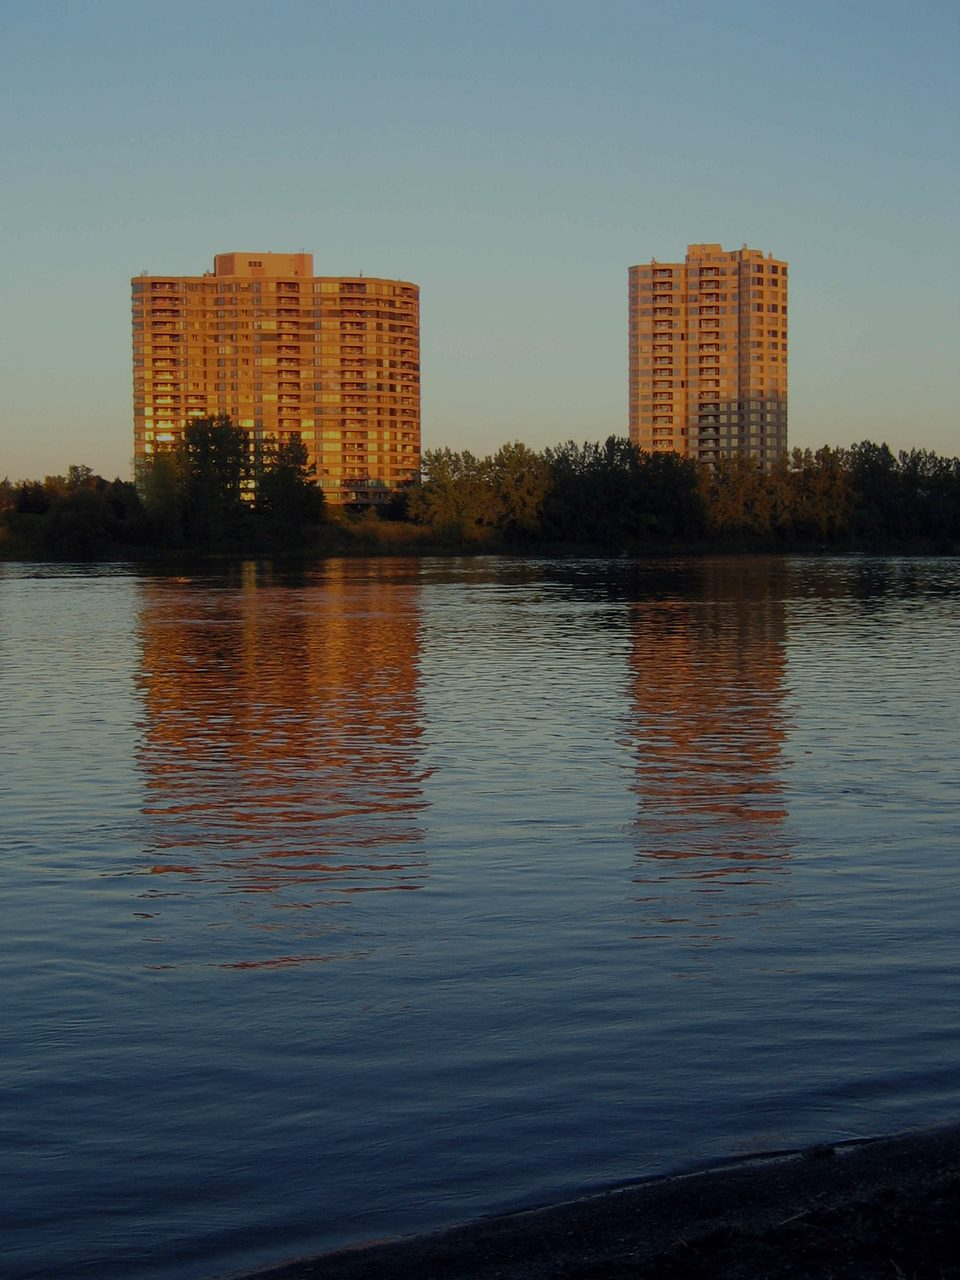 Nuns' Island, the luxury real estate hotspot in Montreal & Surroundings - Canada